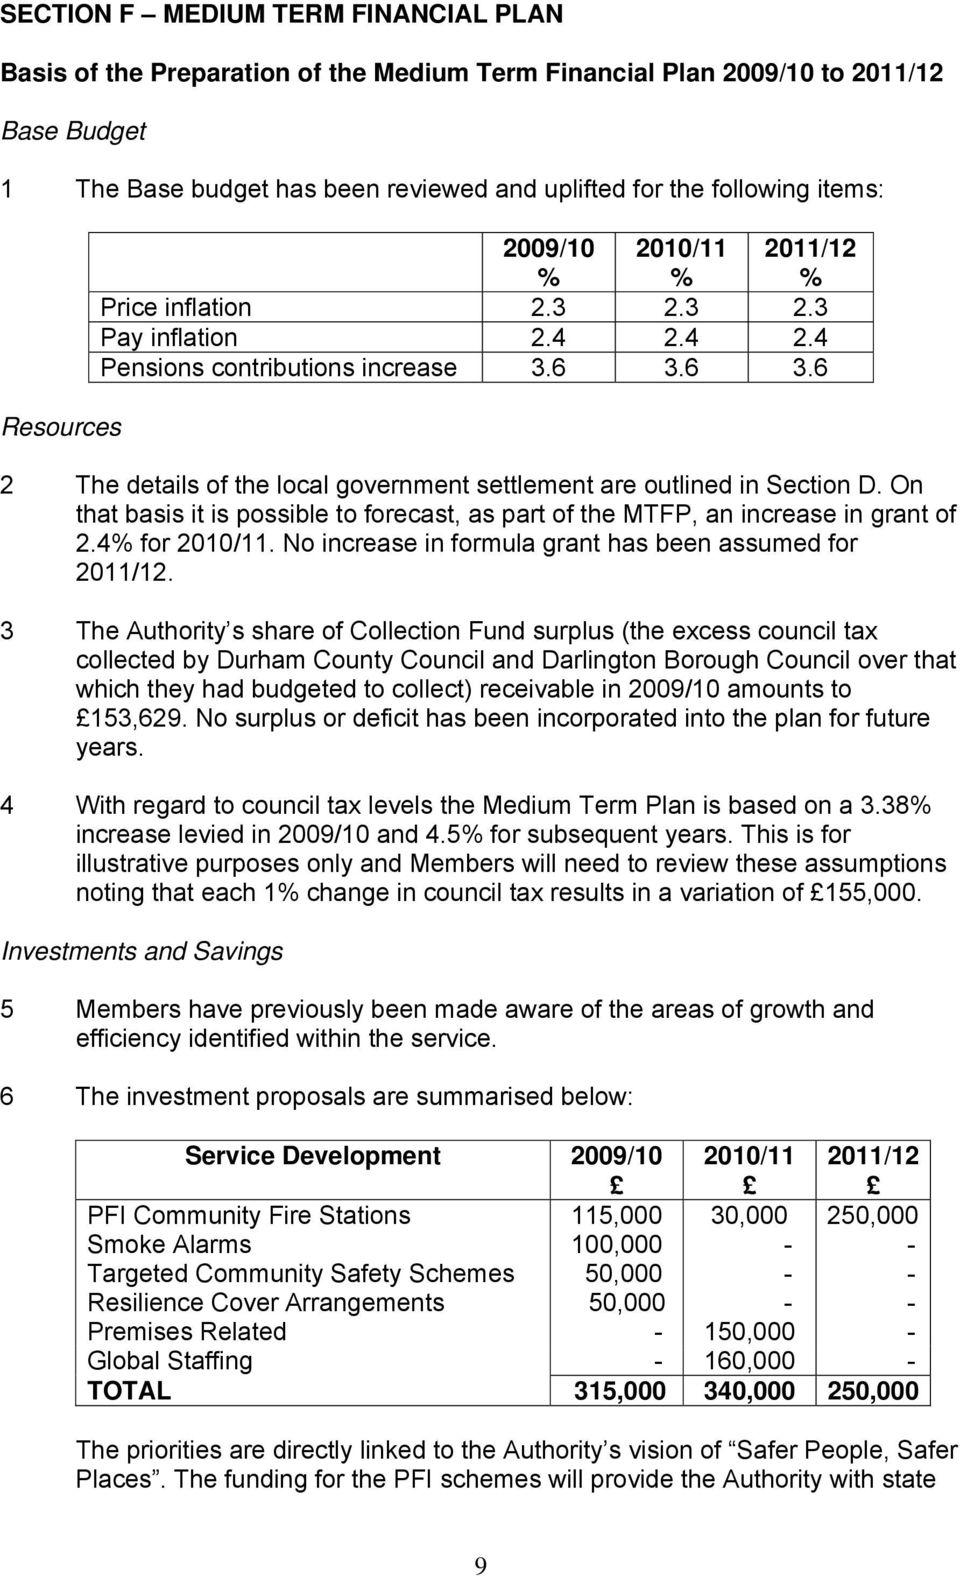 6 3.6 2 The details of the local government settlement are outlined in Section D. On that basis it is possible to forecast, as part of the MTFP, an increase in grant of 2.4% for 2010/11.